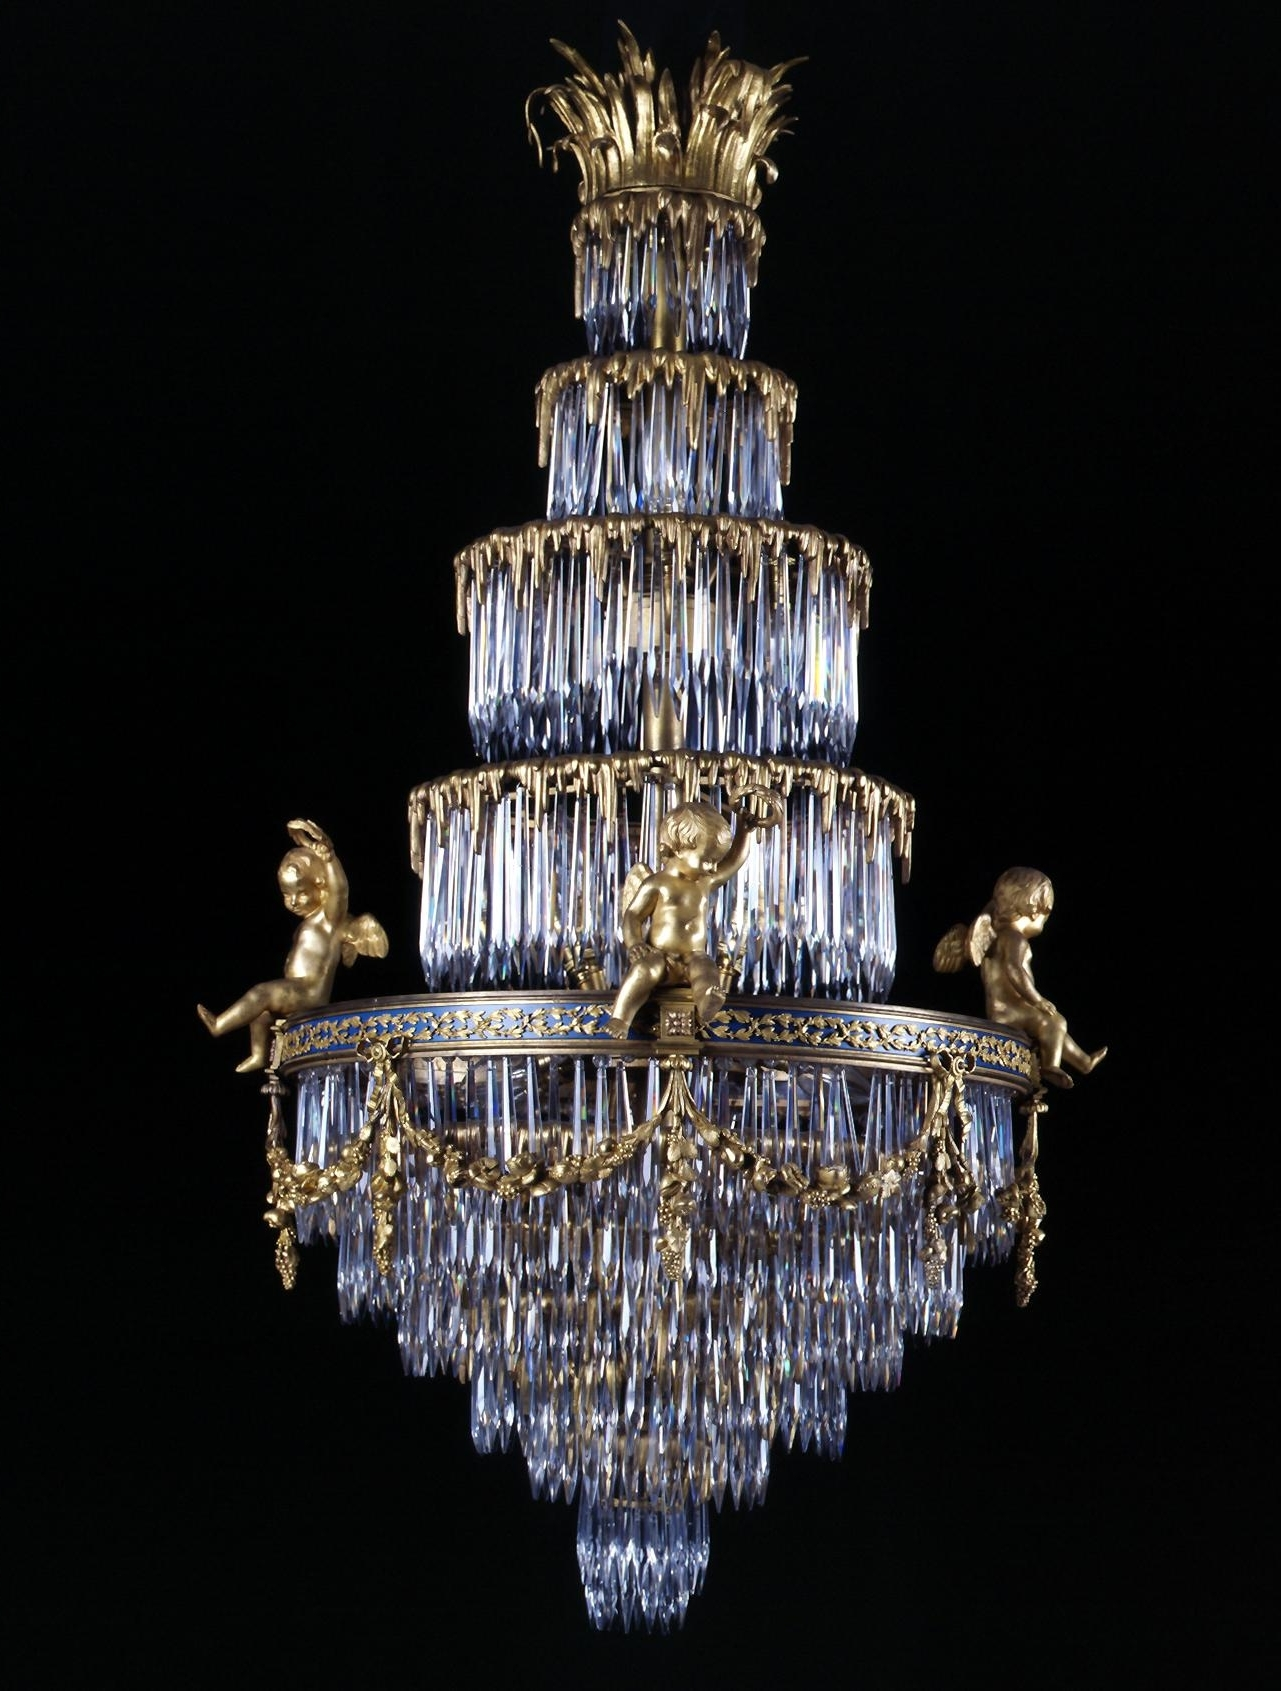 Baccarat A Rare Crystal And Gilt Bronze Waterfall Chandelier French Regarding Well Known Sparkly Chandeliers (View 9 of 15)